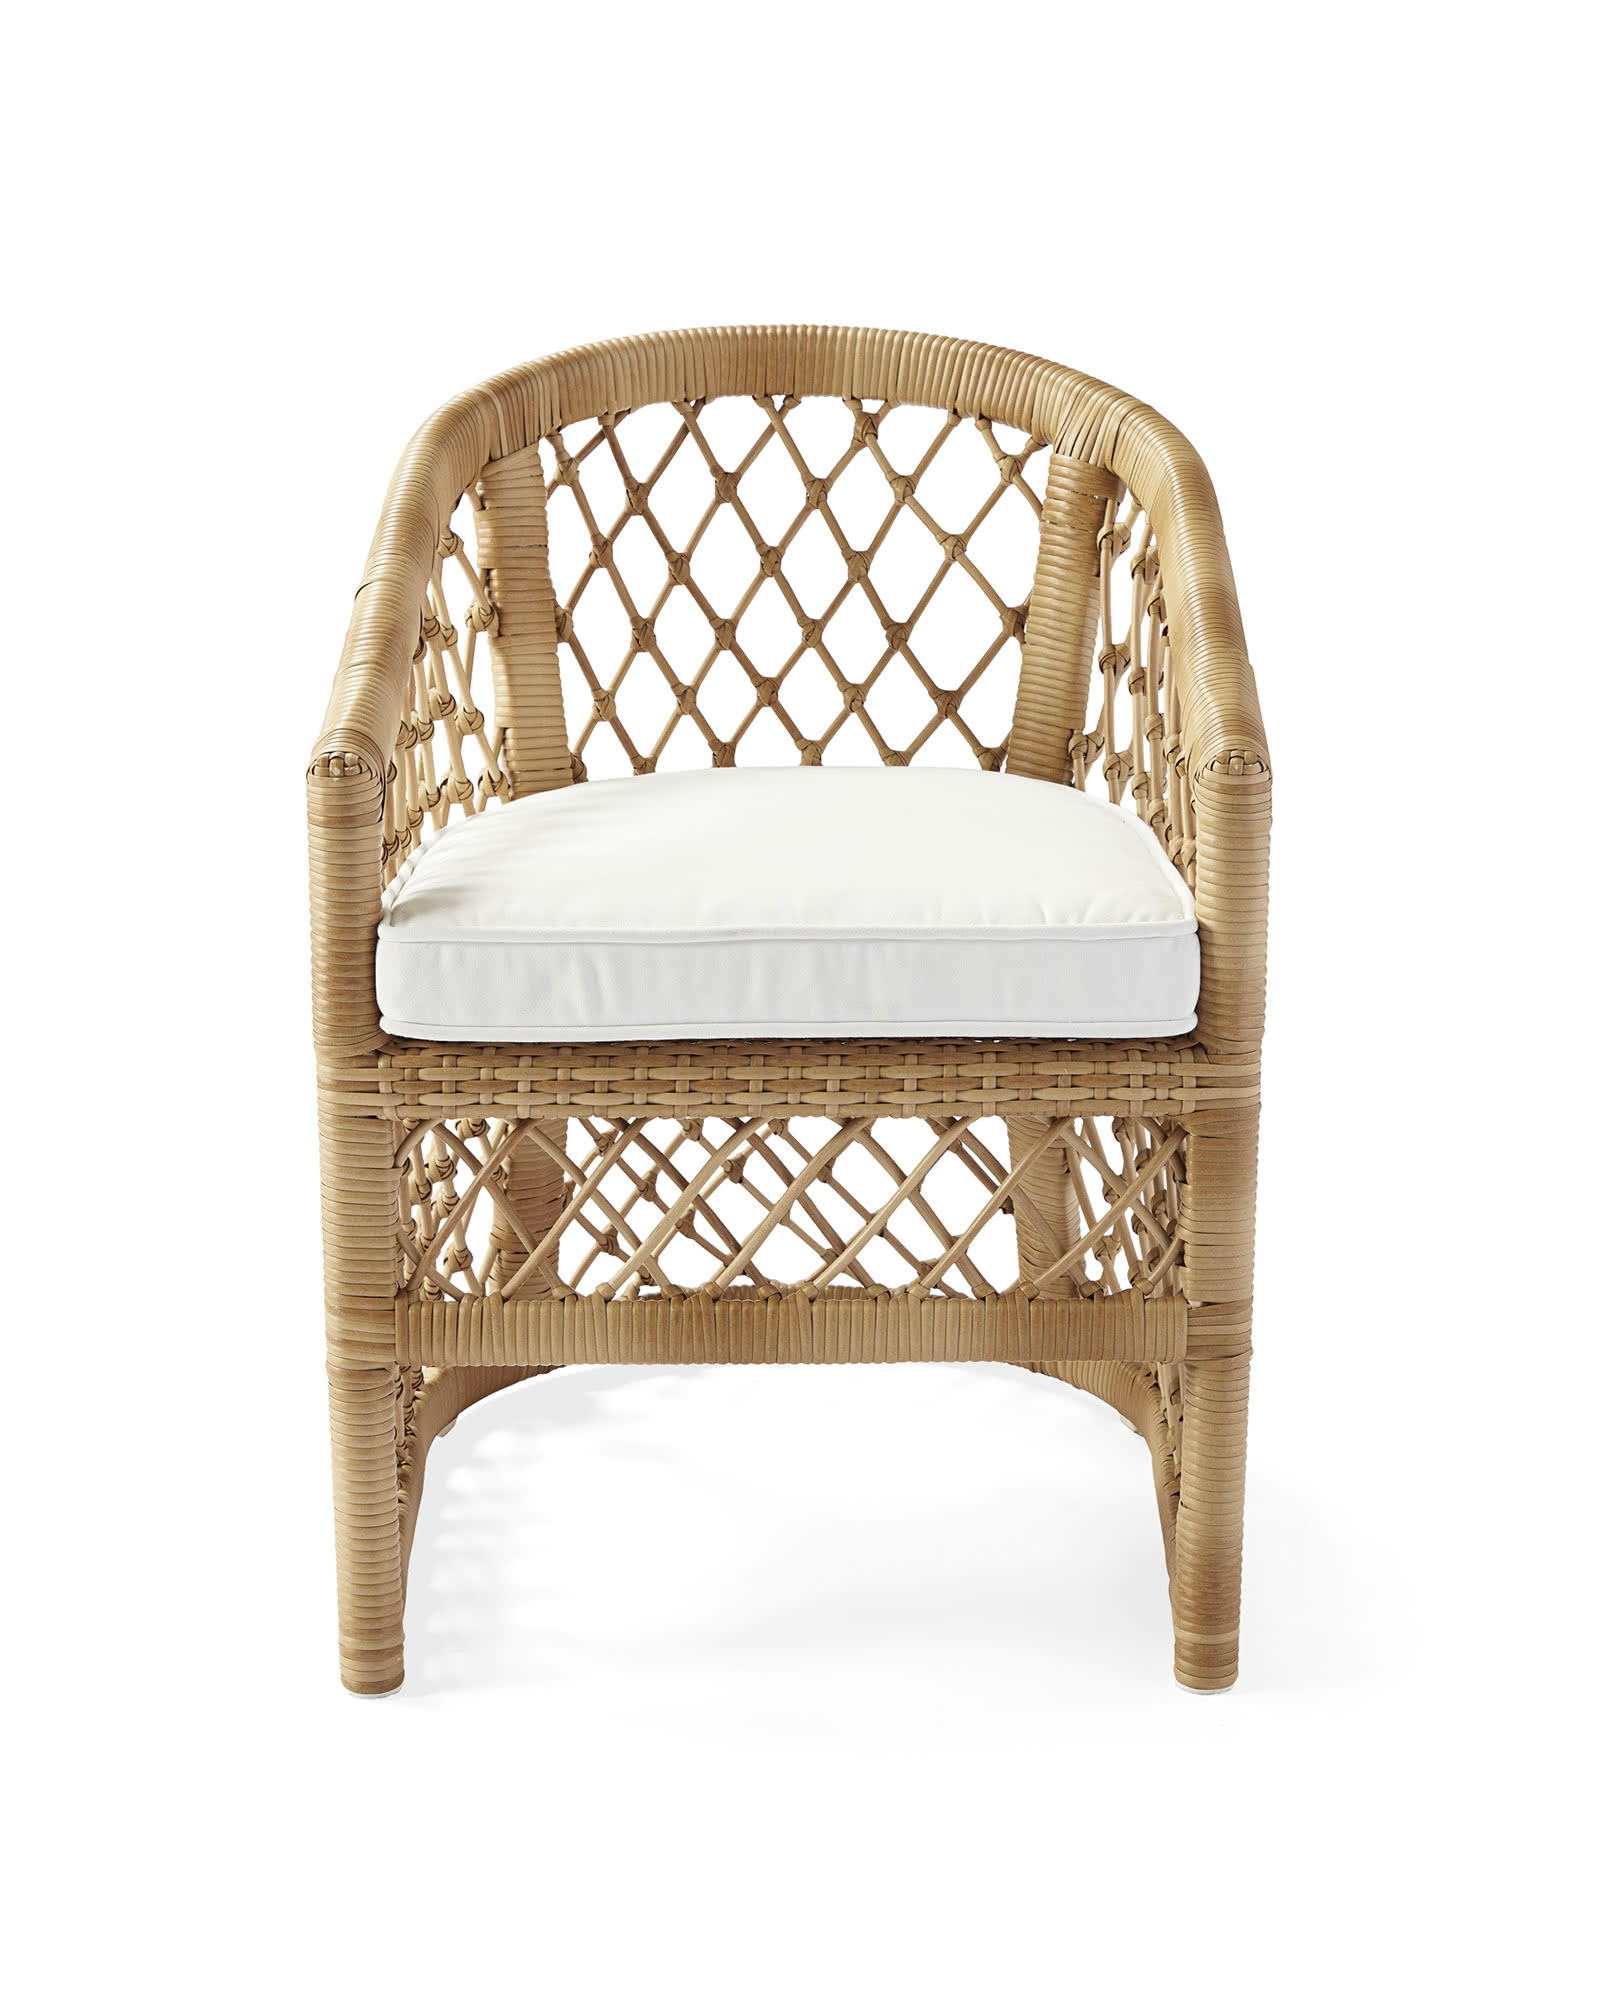 Capistrano Outdoor Dining Chair,